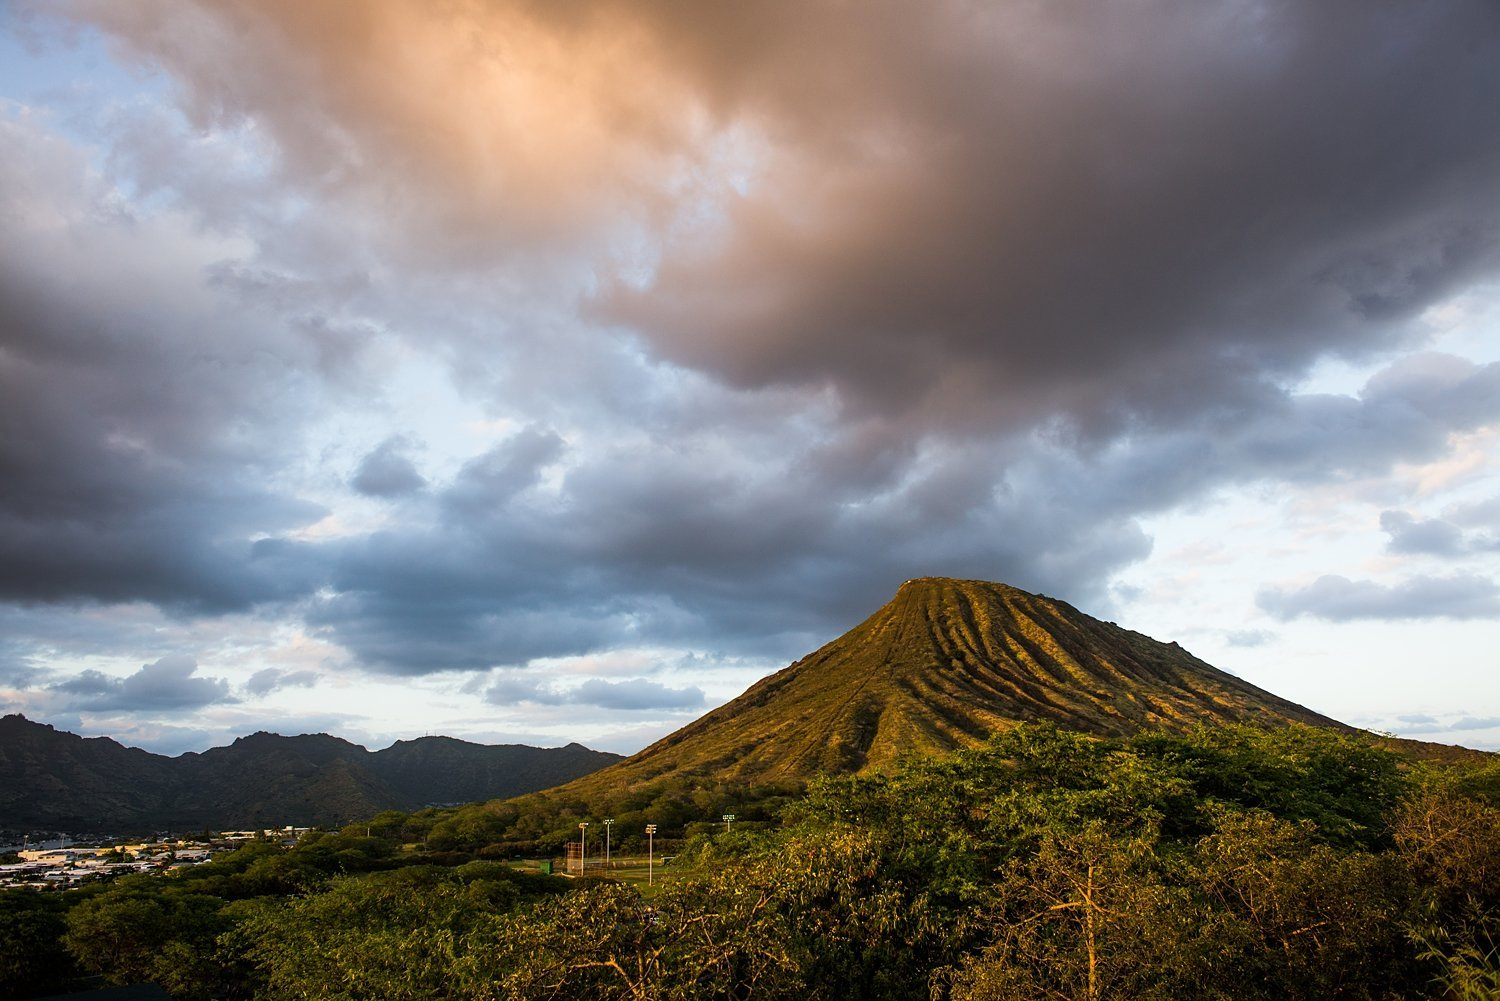 Sunset and dramatic clouds over Koko Head in Hawaii